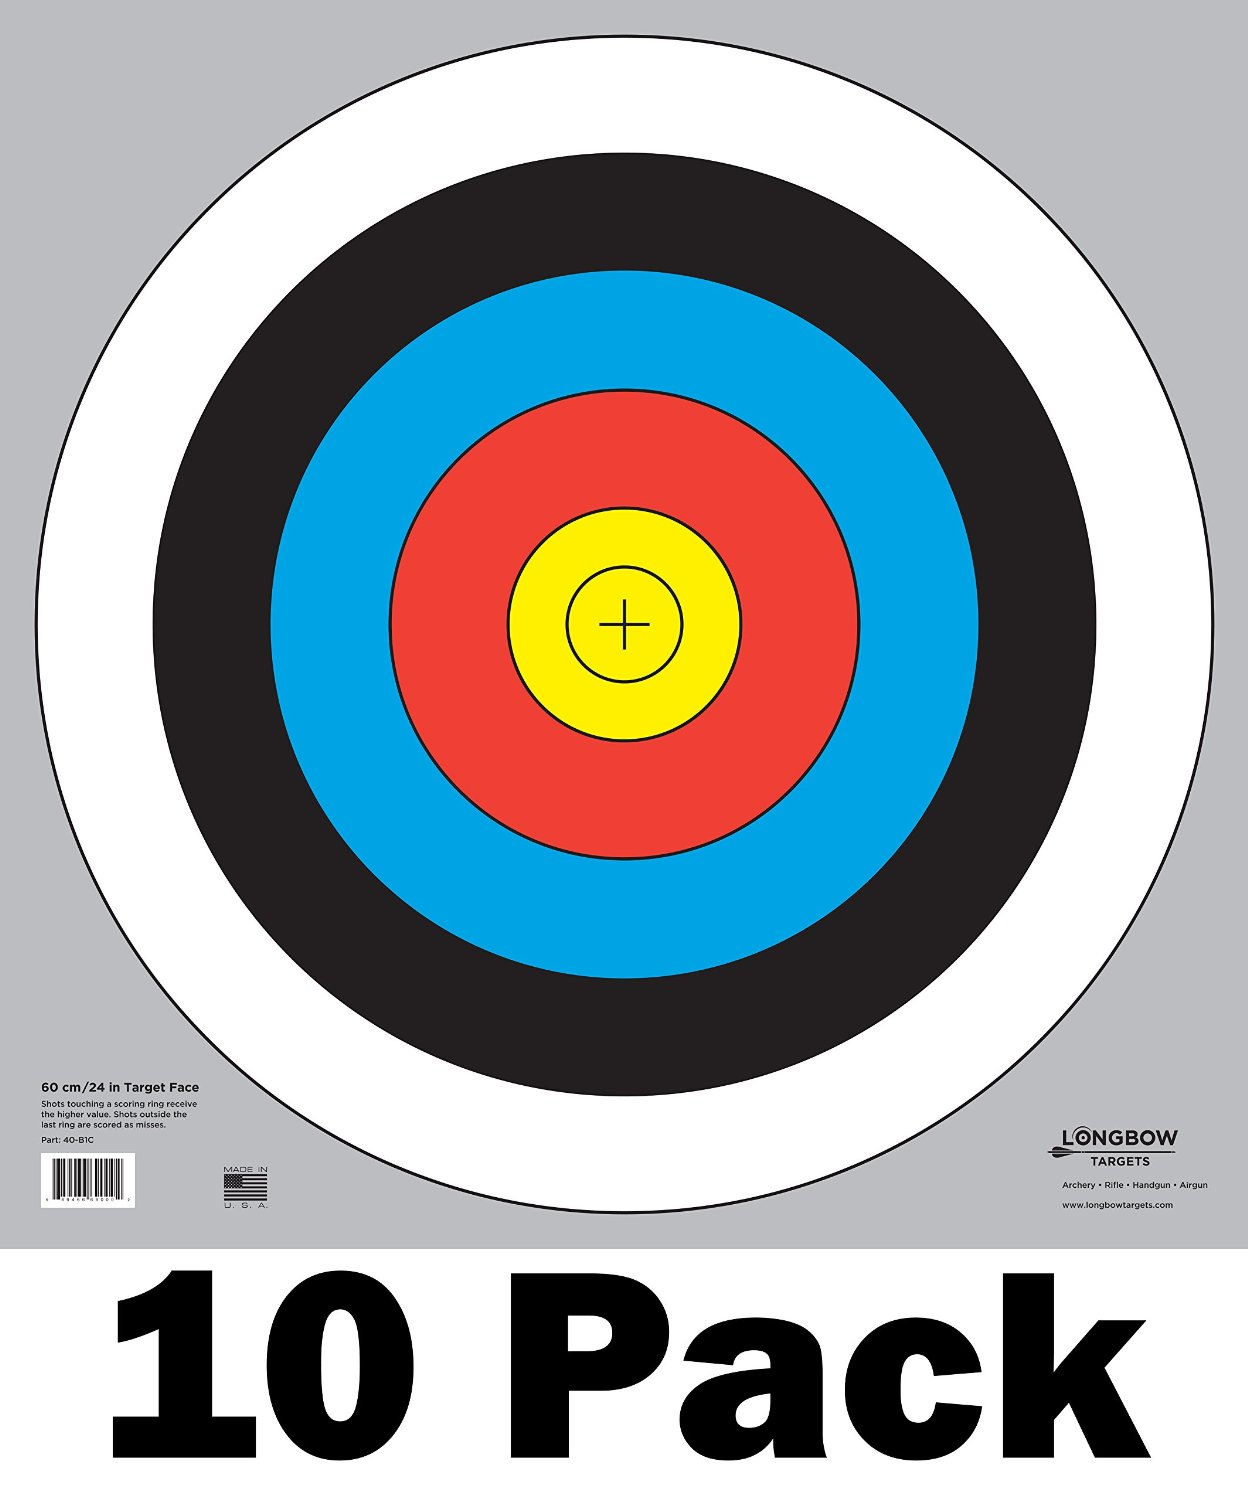 60 cm / 24 in Bullseye Archery and Gun Targets by Longbow Targets (4, 10, 25, & 100 Packs)